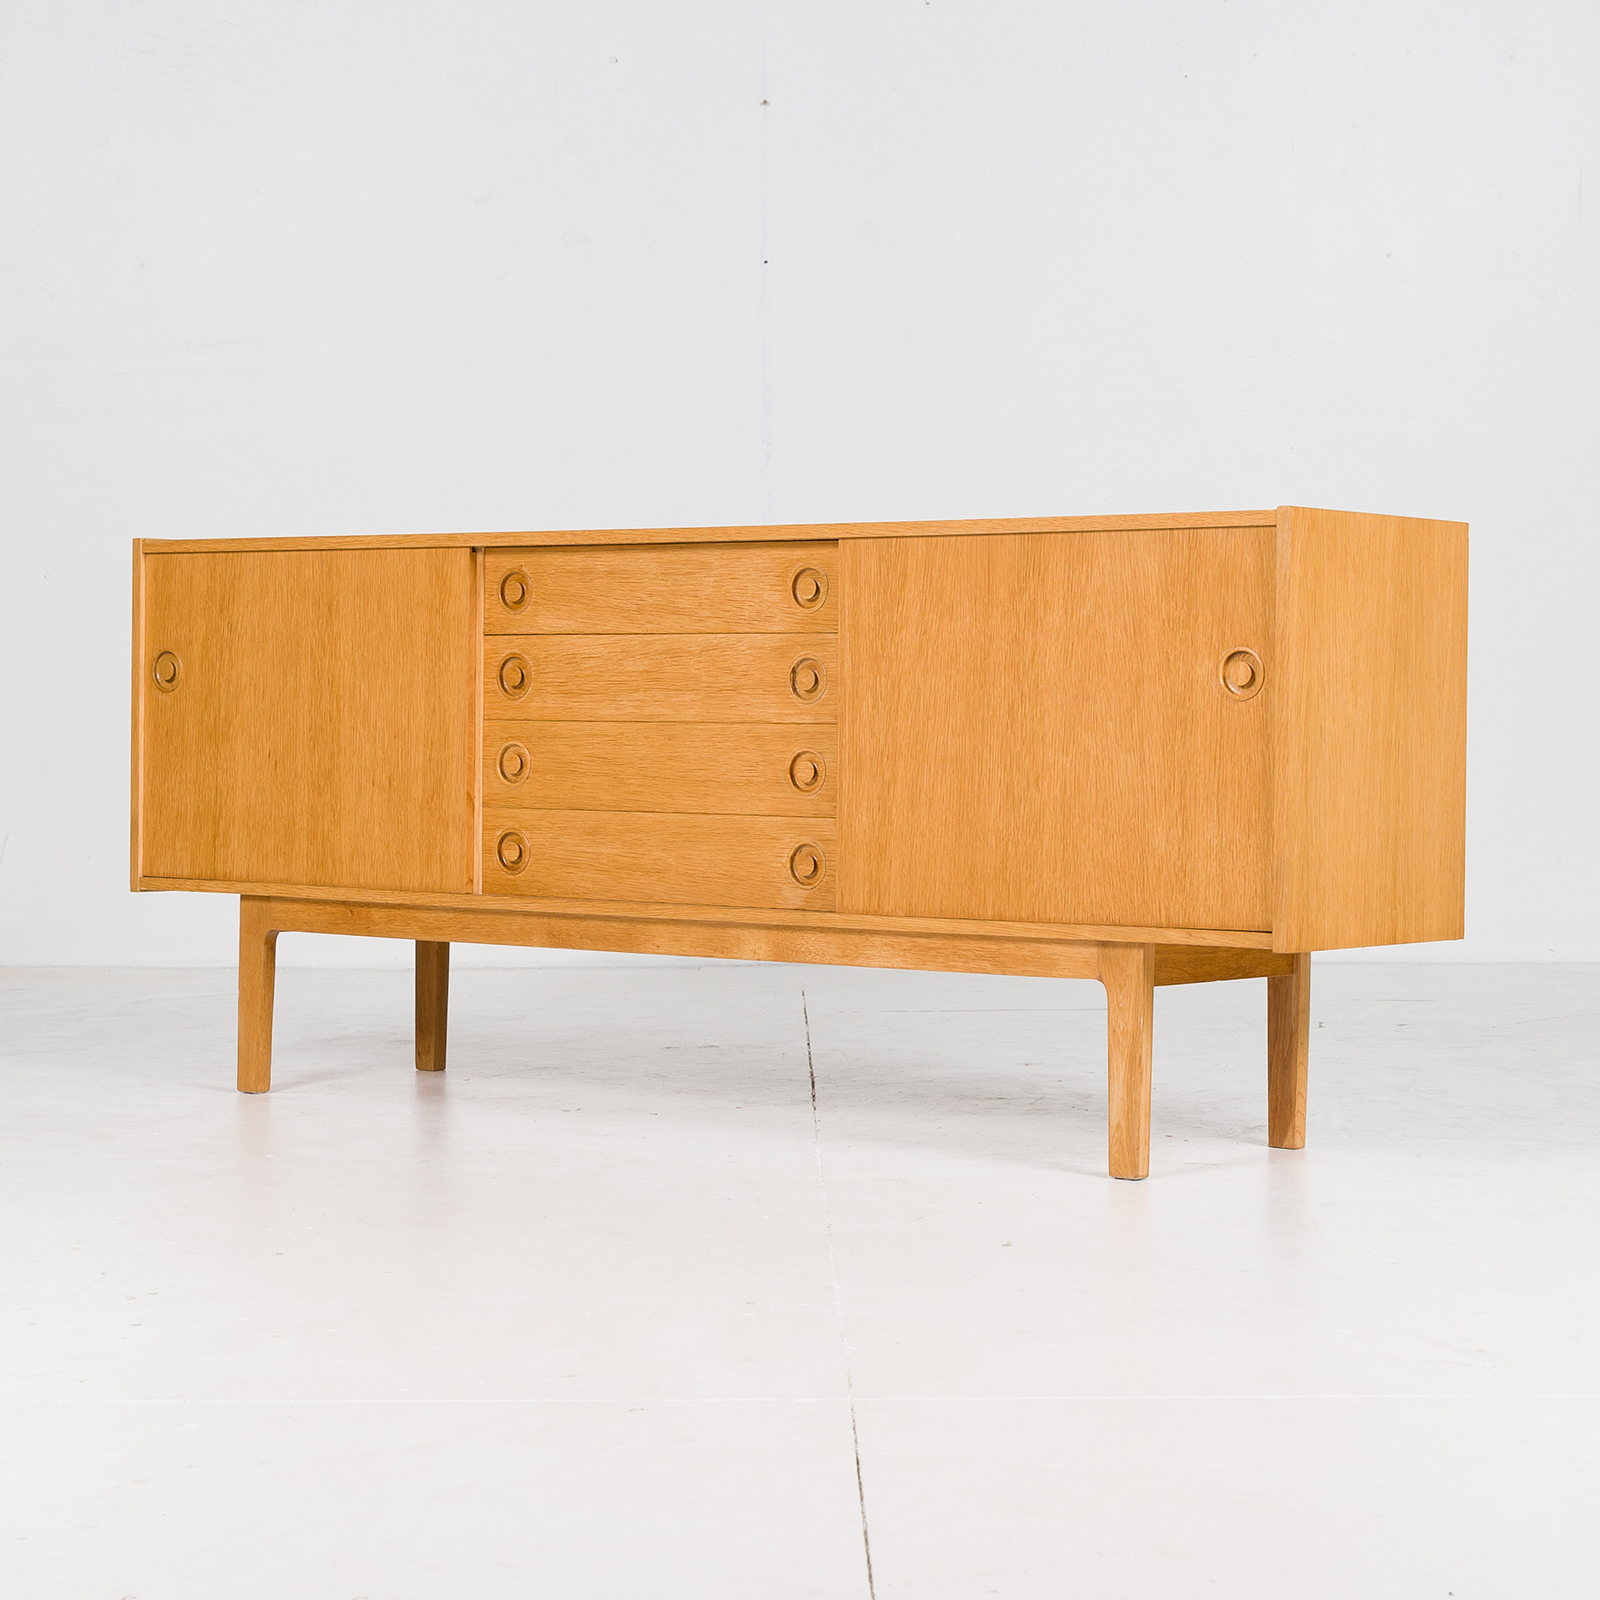 Sideboard In Oak With Drawers And Sliding Doors, 1960s, Denmark401